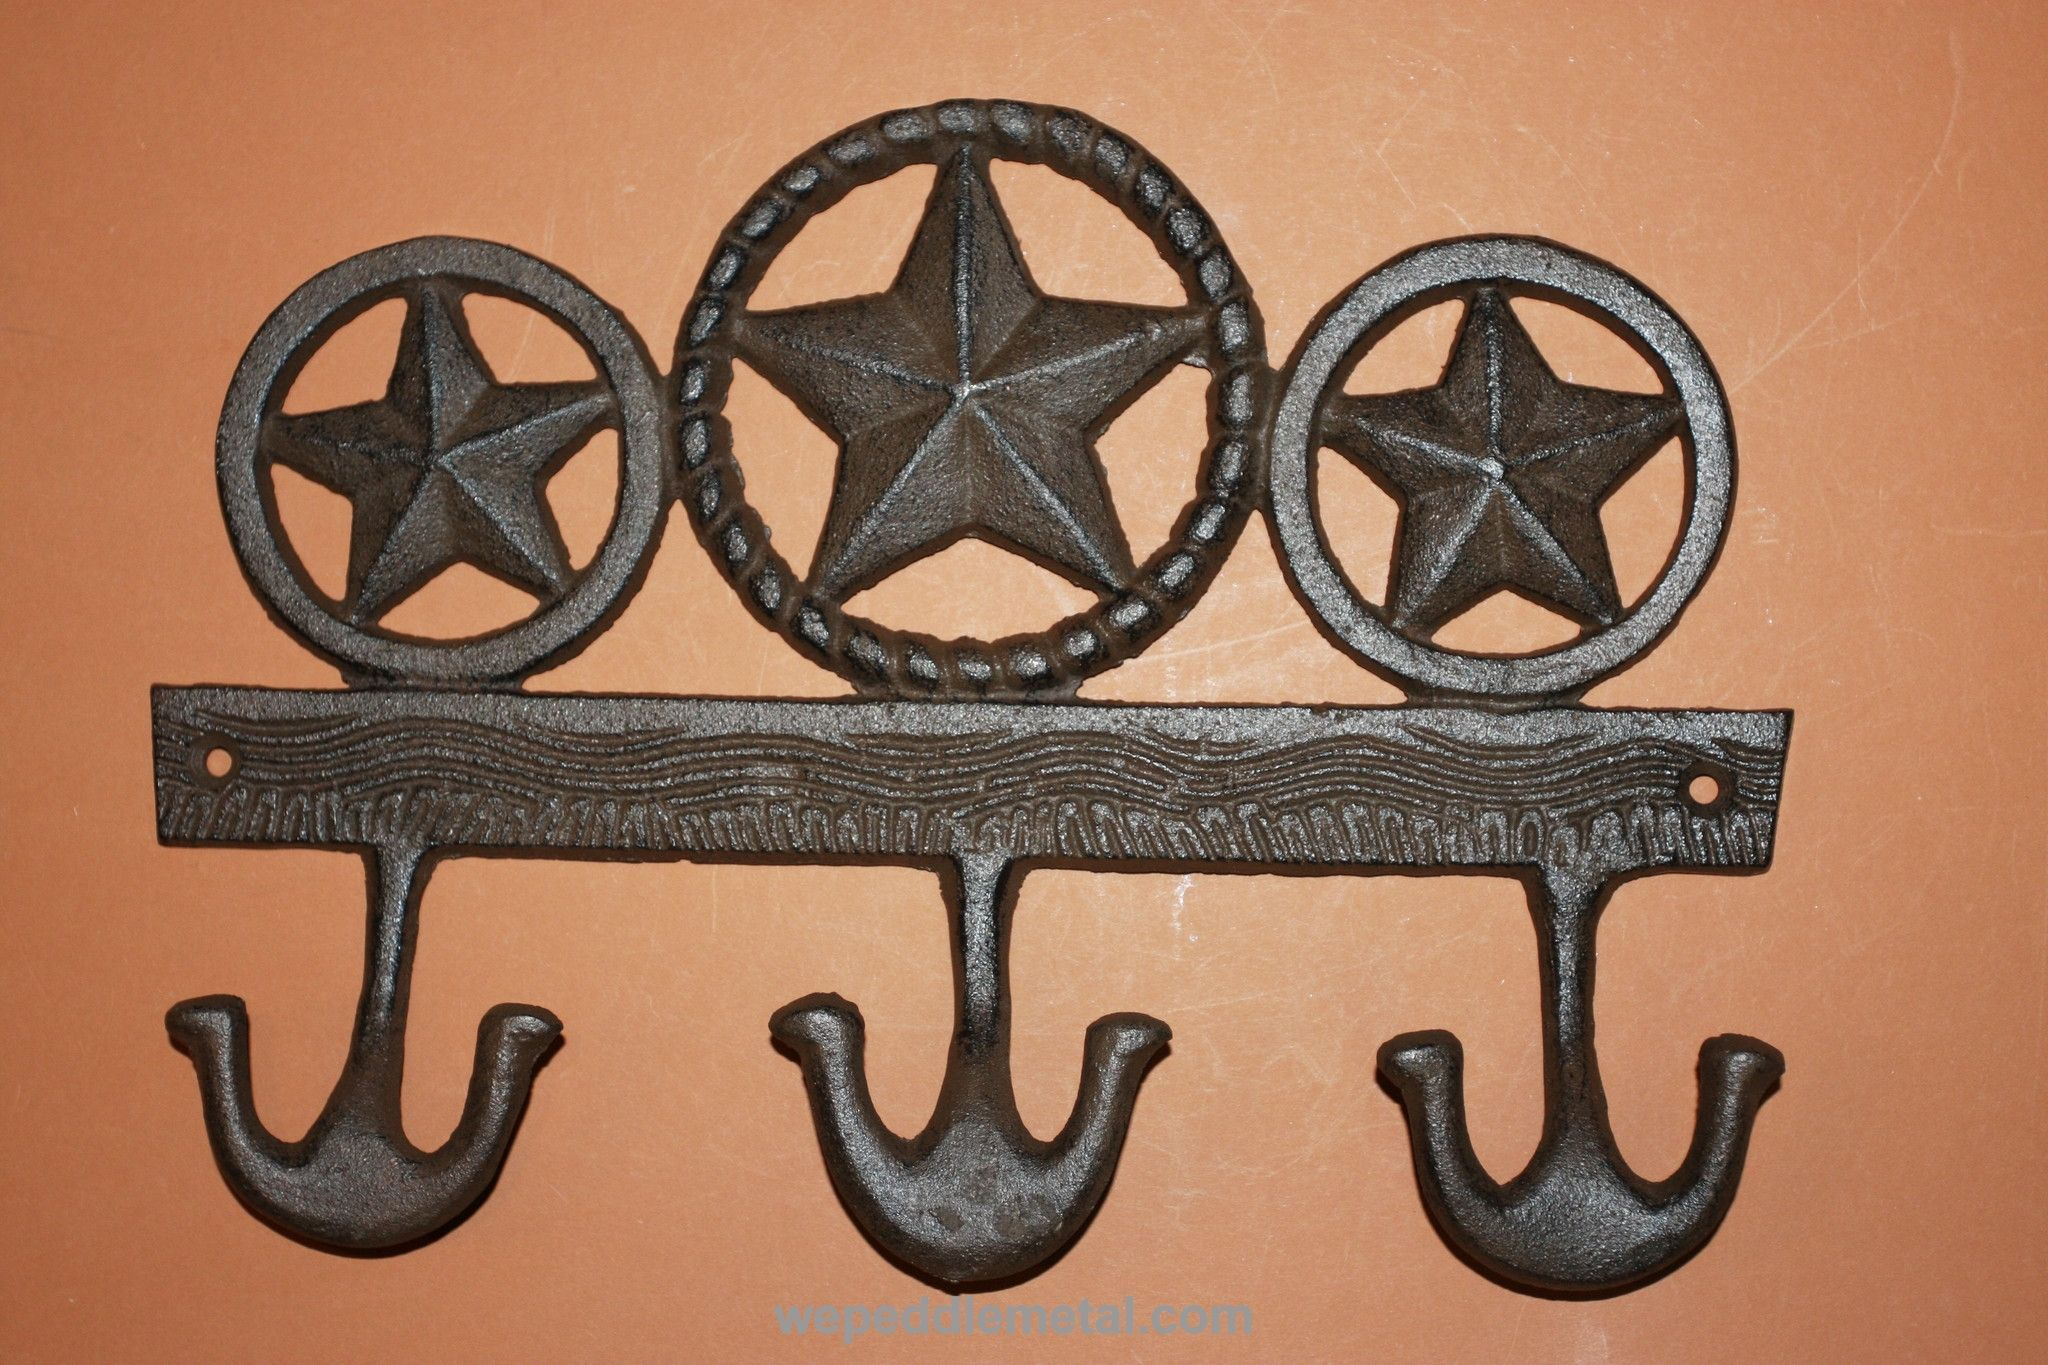 3 ANTIQUE-STYLE CAST IRON COWBOY WESTERN HAT HOOKS wall hardware rustic coat